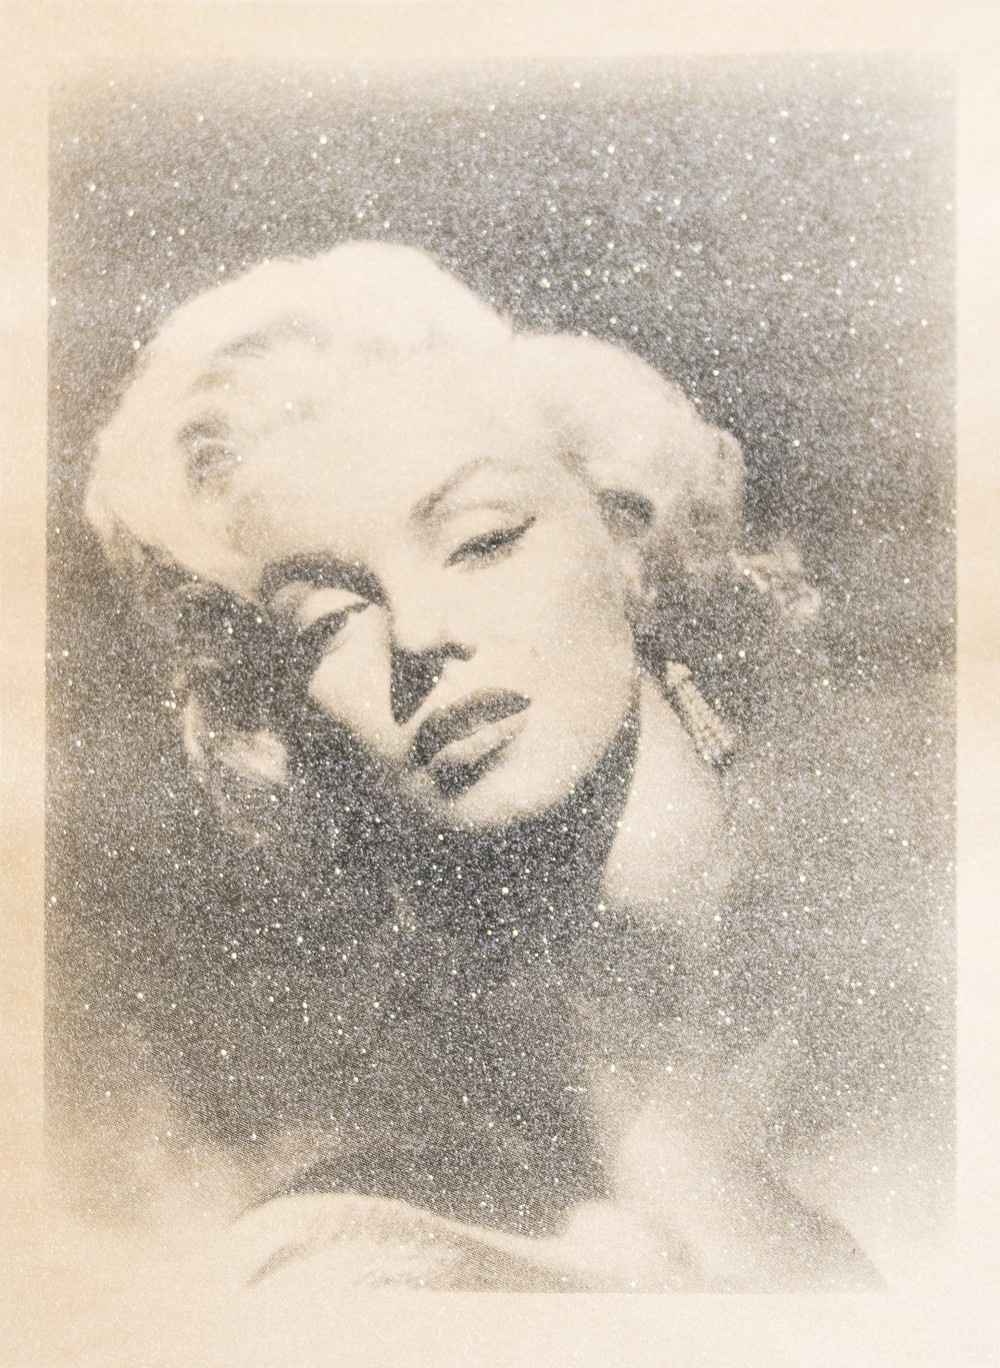 Russell Young,Marilyn Glamour, 2010, Screenprint, acrylic, and diamond dust on linen, Purchased by the Art Resource Trust, Polk Museum of Art Permanent Collection 2013.6.2 © Russell Young.